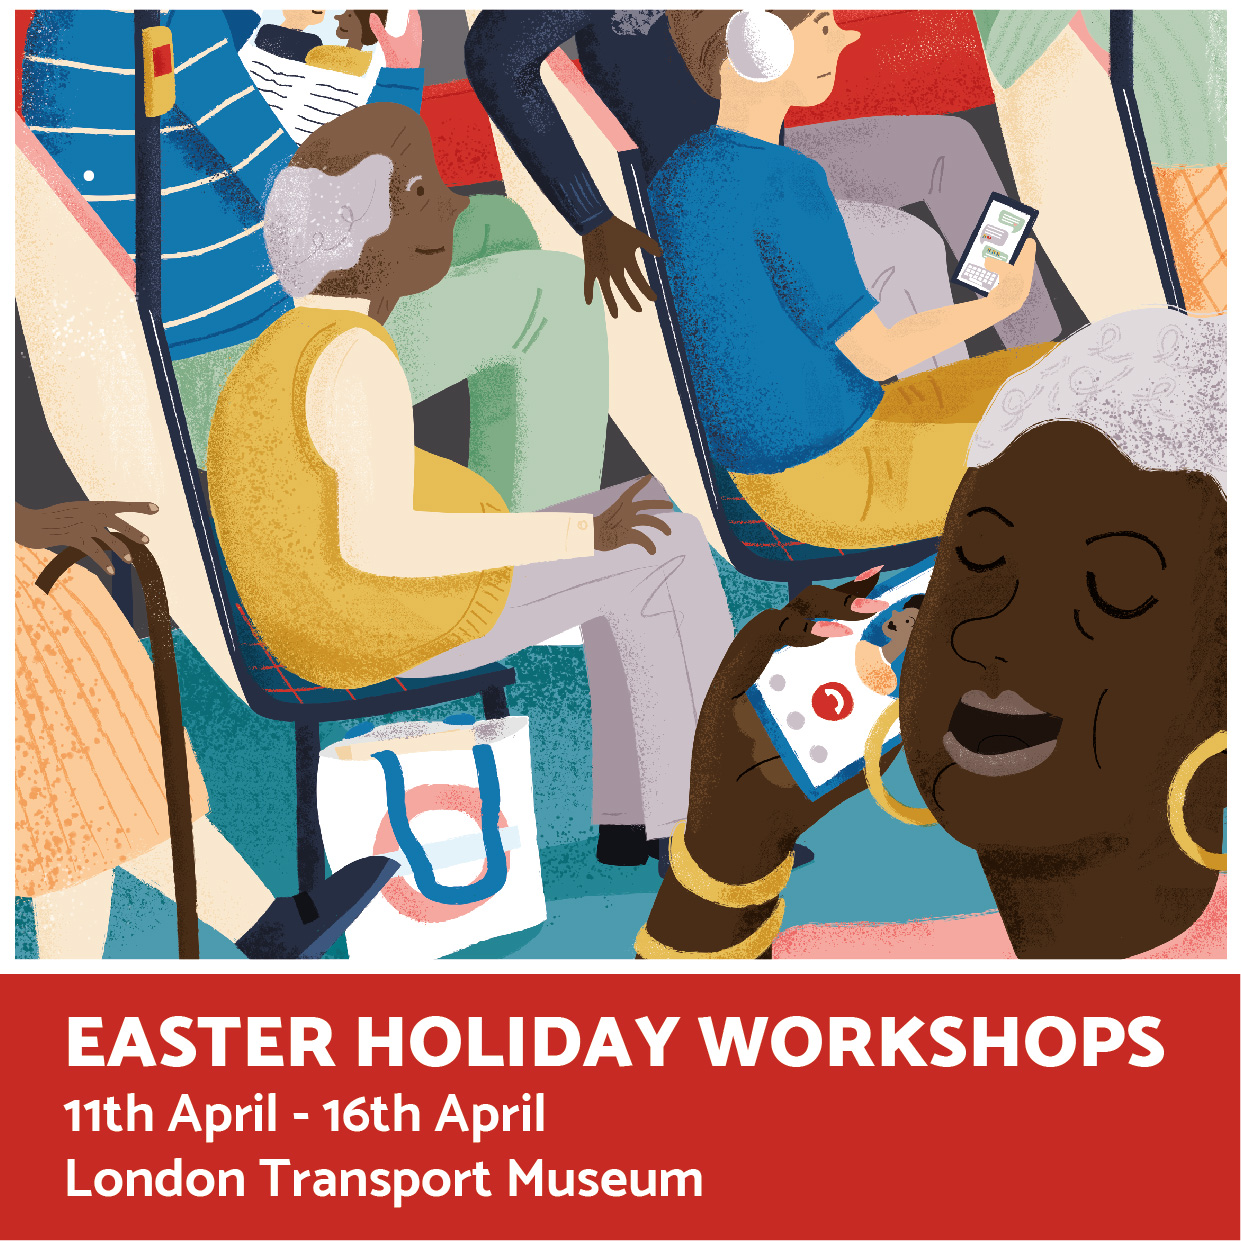 Illustration workshops run by Elly Jahnz at the London Transport Museum